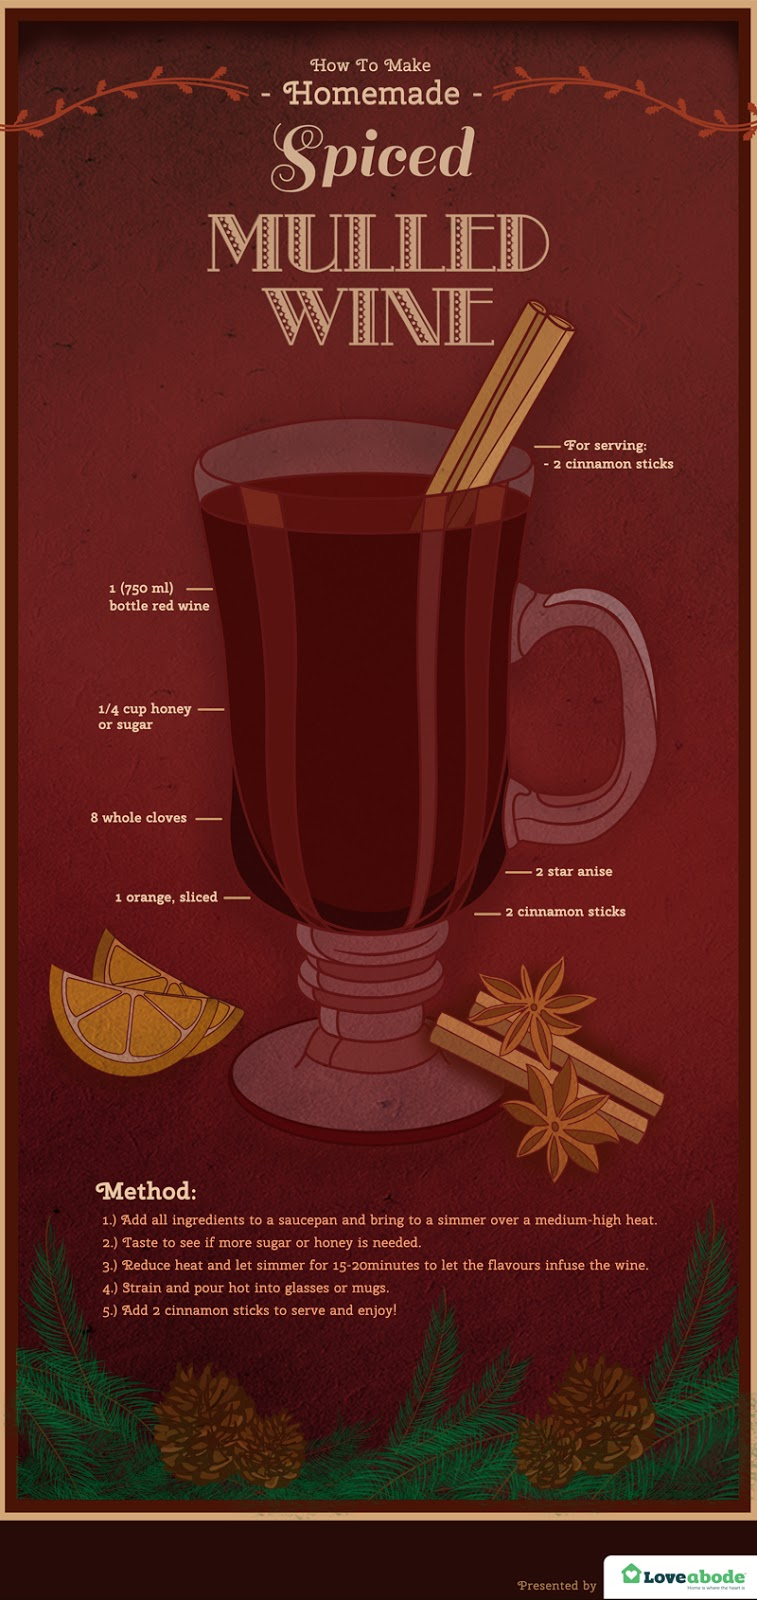 Homemade Spiced Mulled Wine